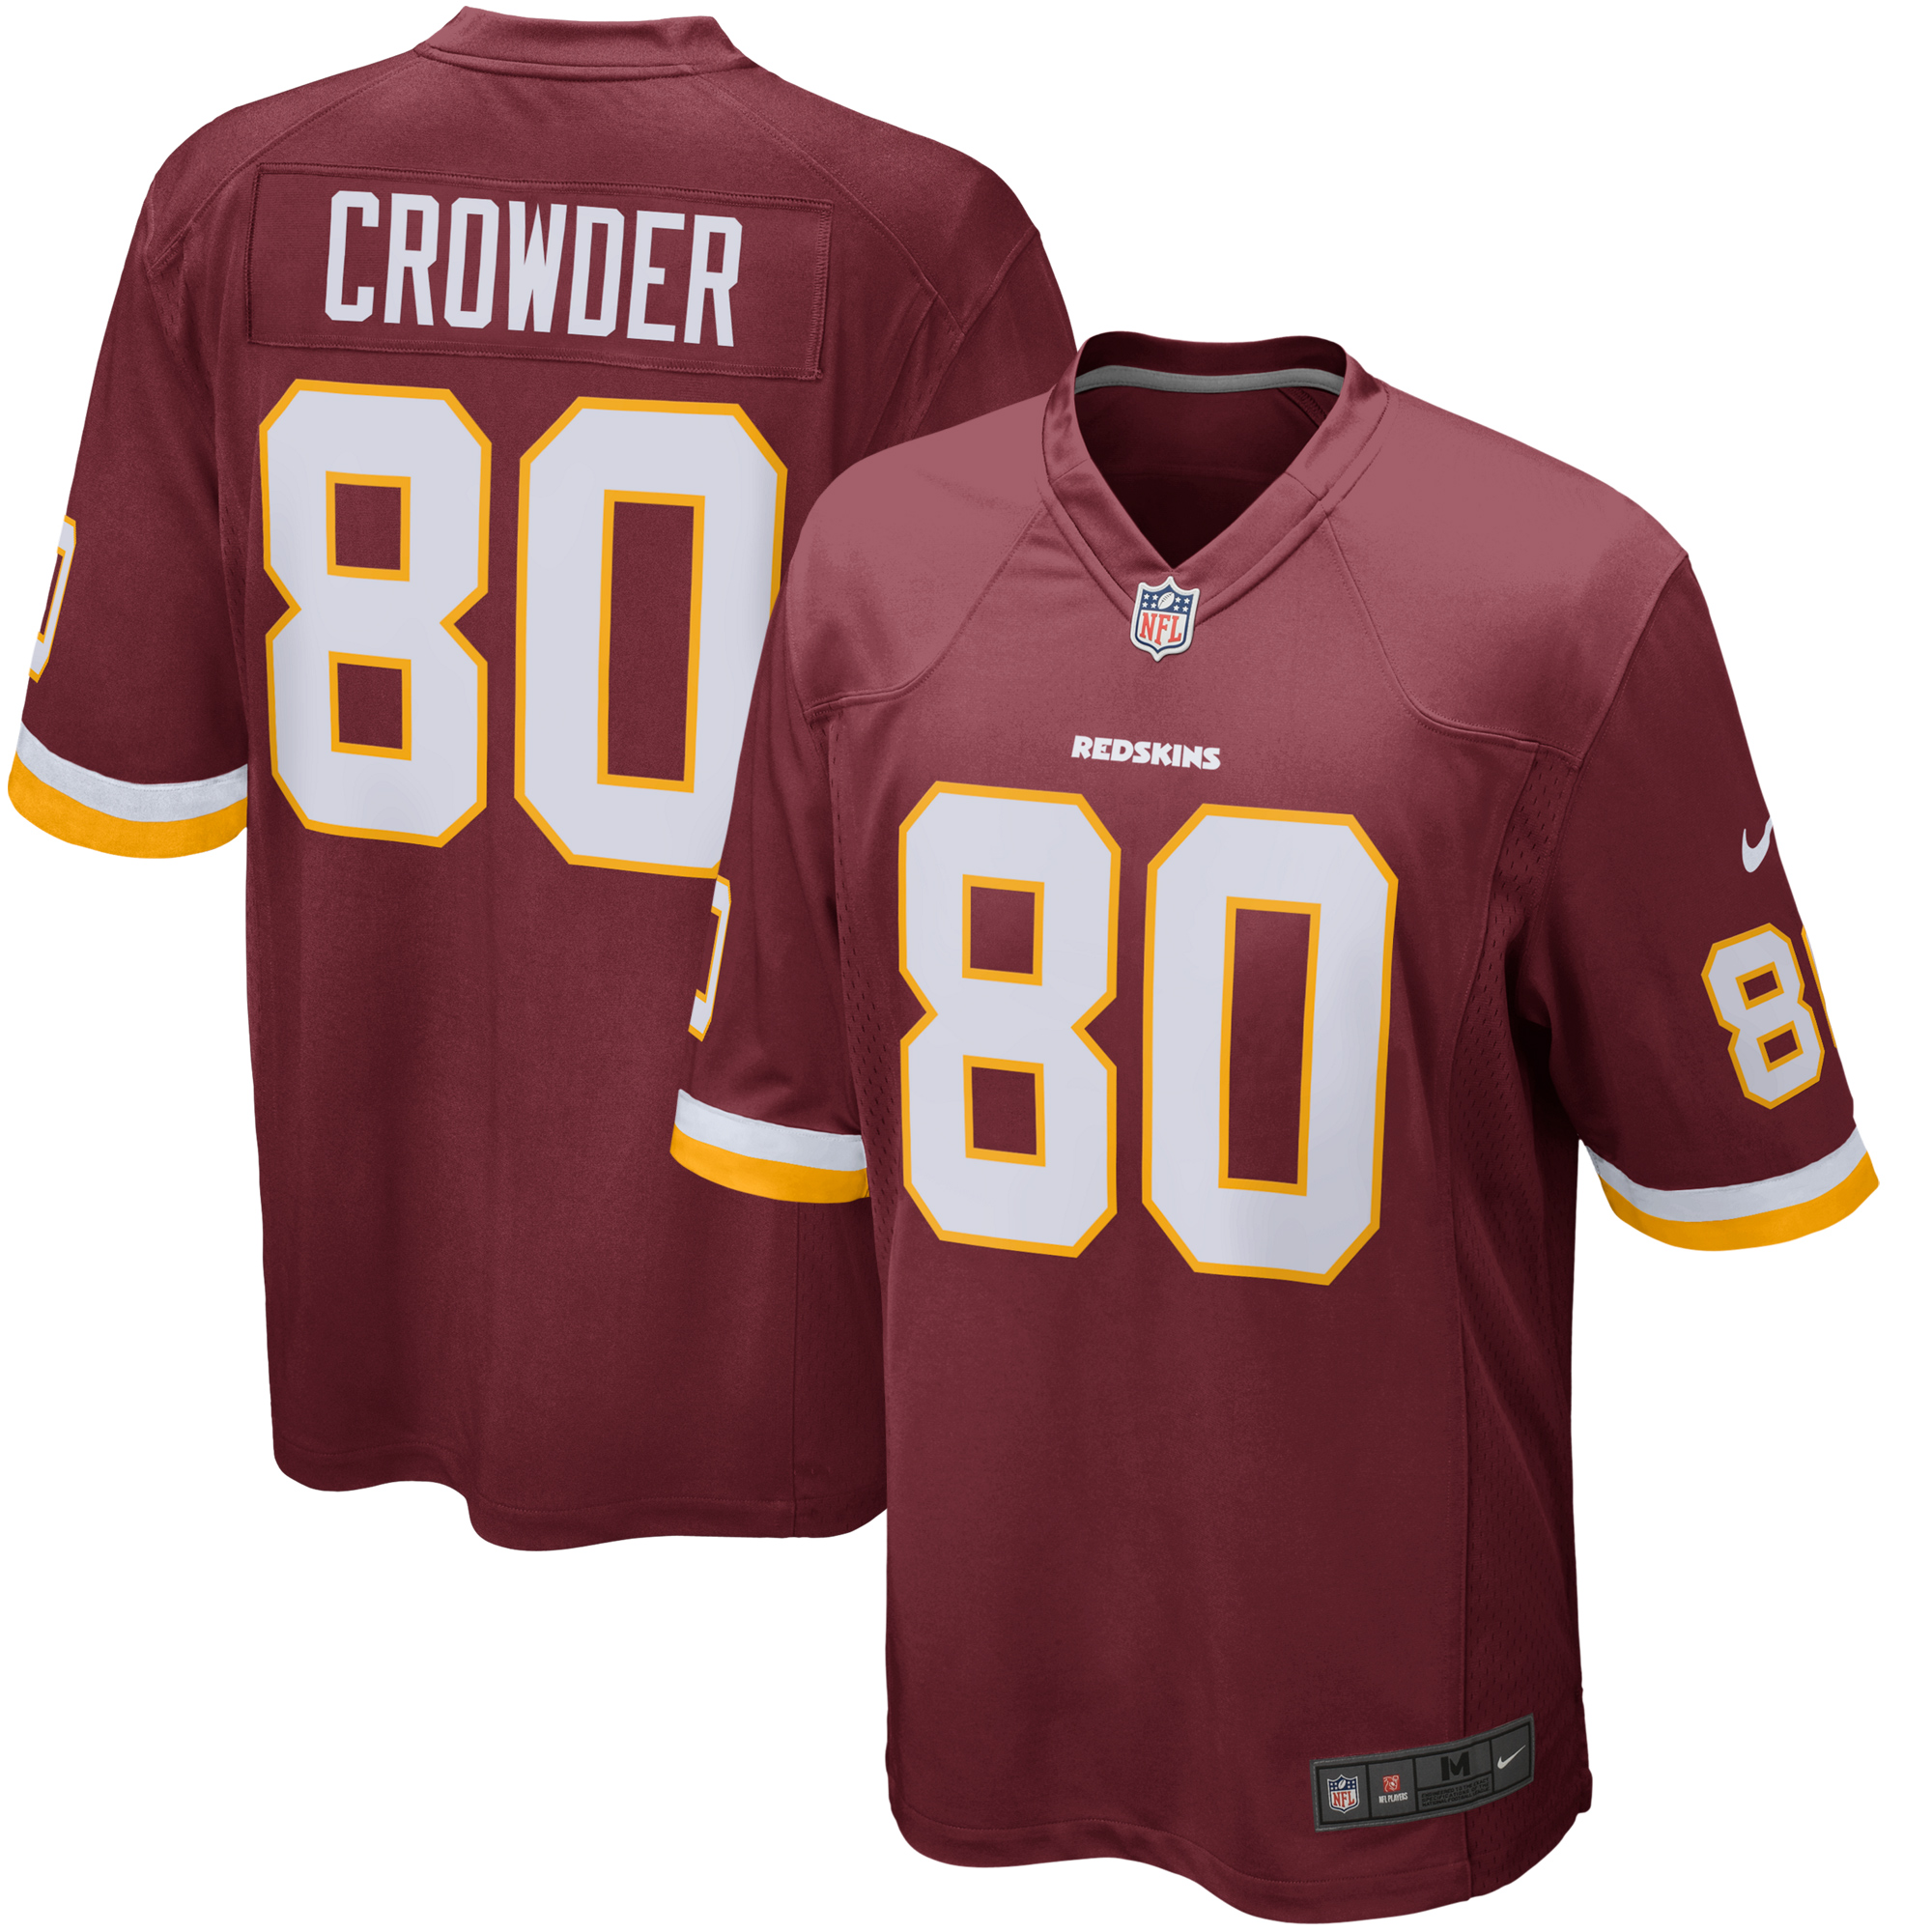 Jamison Crowder Washington Redskins Nike Game Jersey - Burgundy